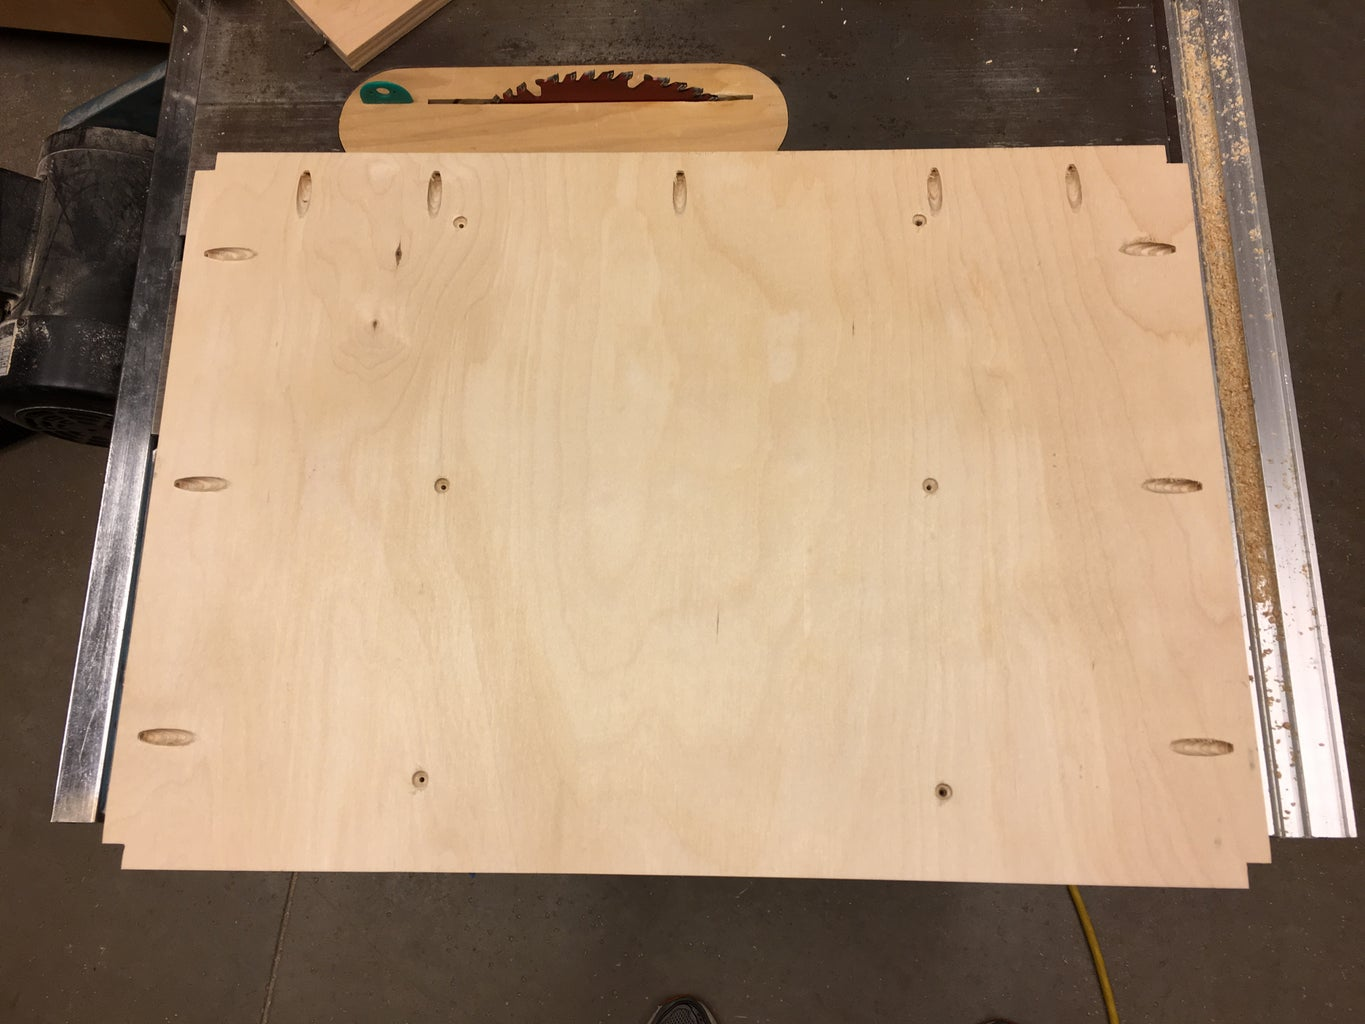 Cut and Install the Bottom Piece